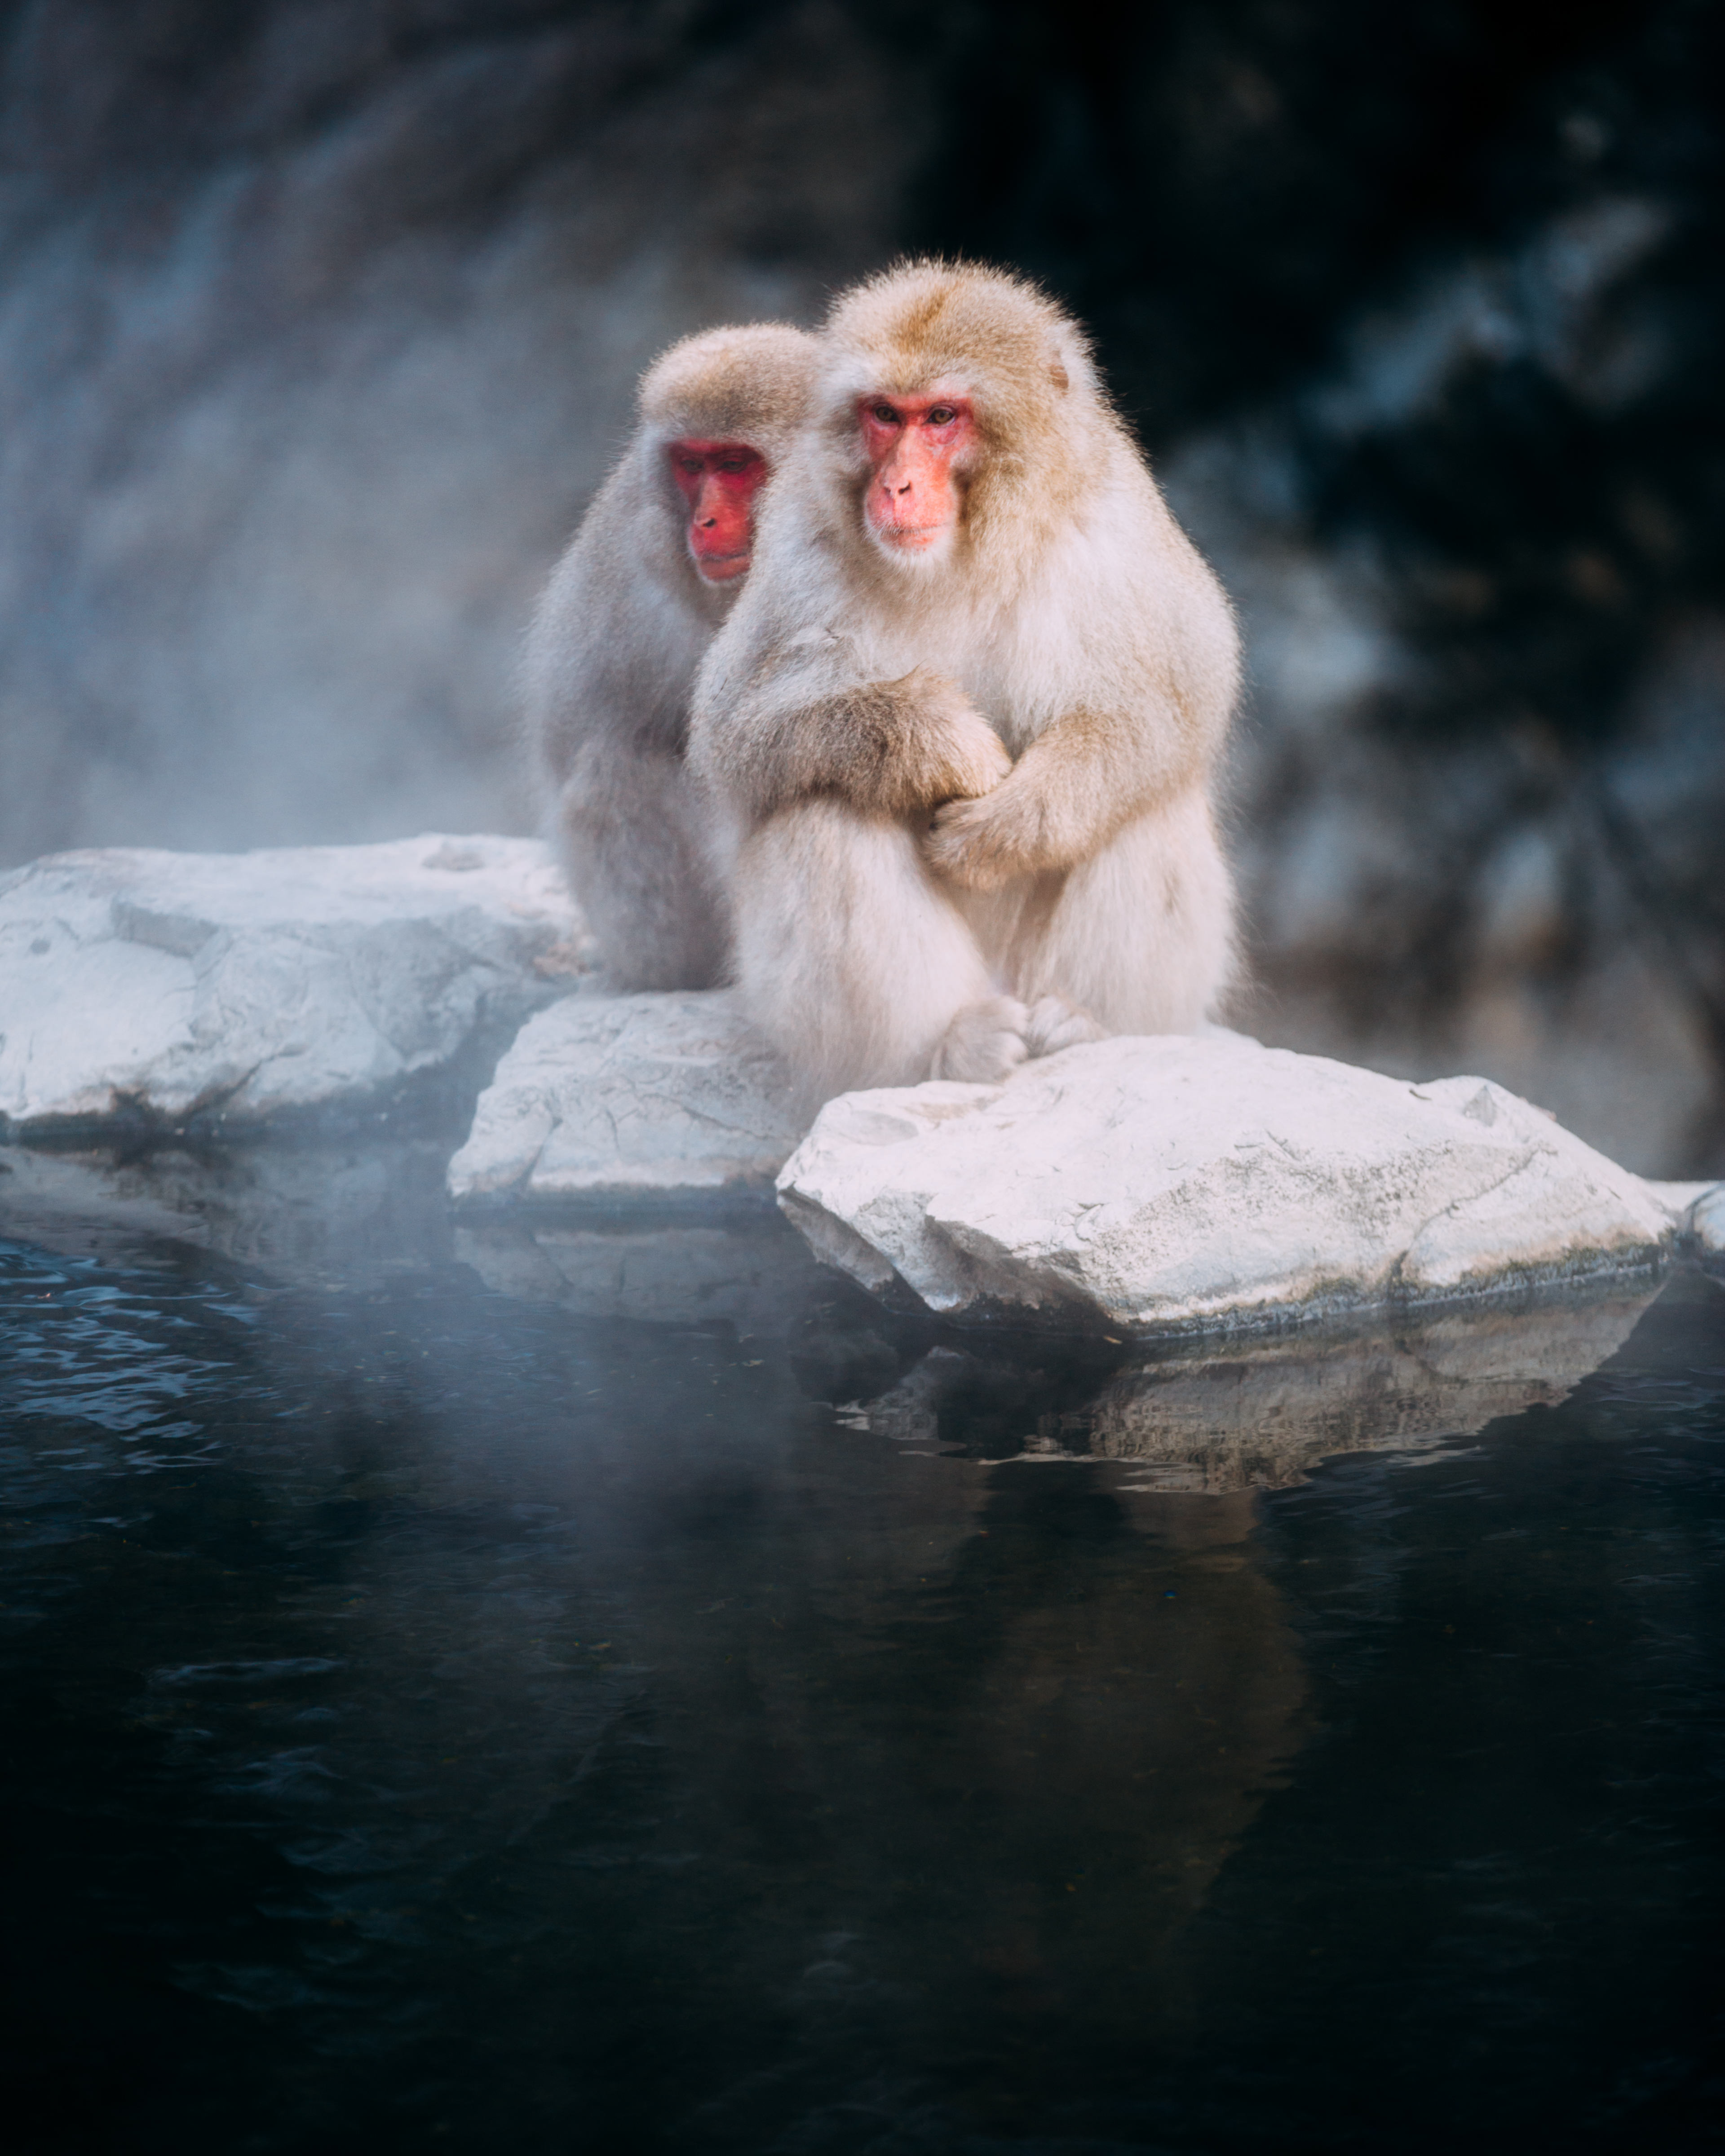 147289 Screensavers and Wallpapers Monkeys for phone. Download Animals, Stones, Monkeys, Fog, Macaque, Macaques pictures for free